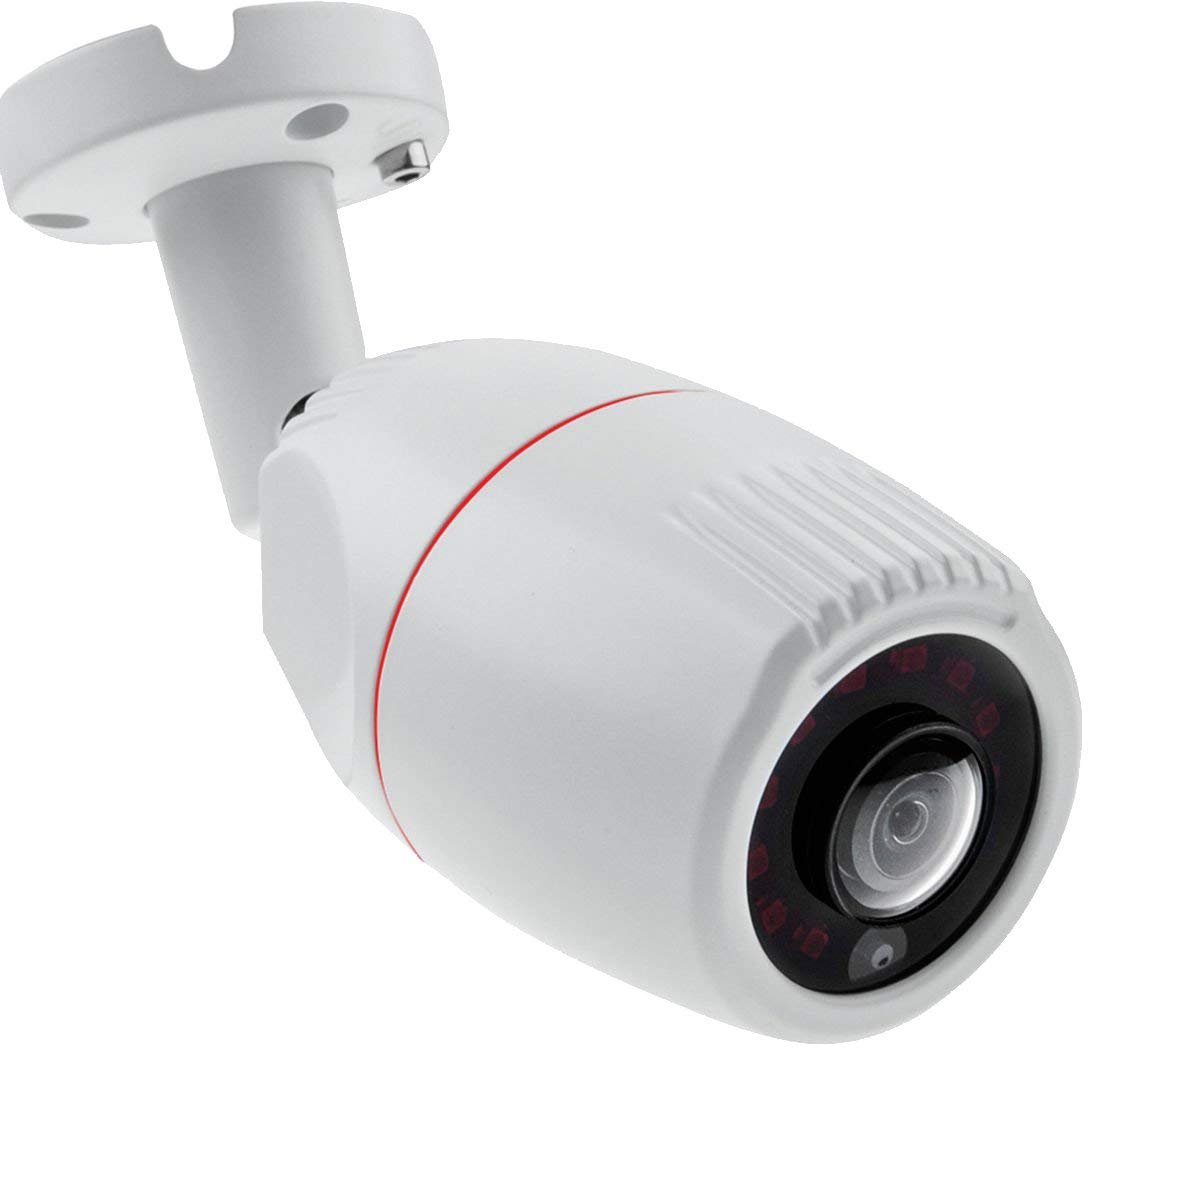 Vanxse CCTV 1/3 Sony CMOS HD 1200TVL 12LED IR-CUT 960H 180degree outdoor Bullet Security Surveillance Camera with bracket очиститель салона runway 2в1 универсальный 450мл